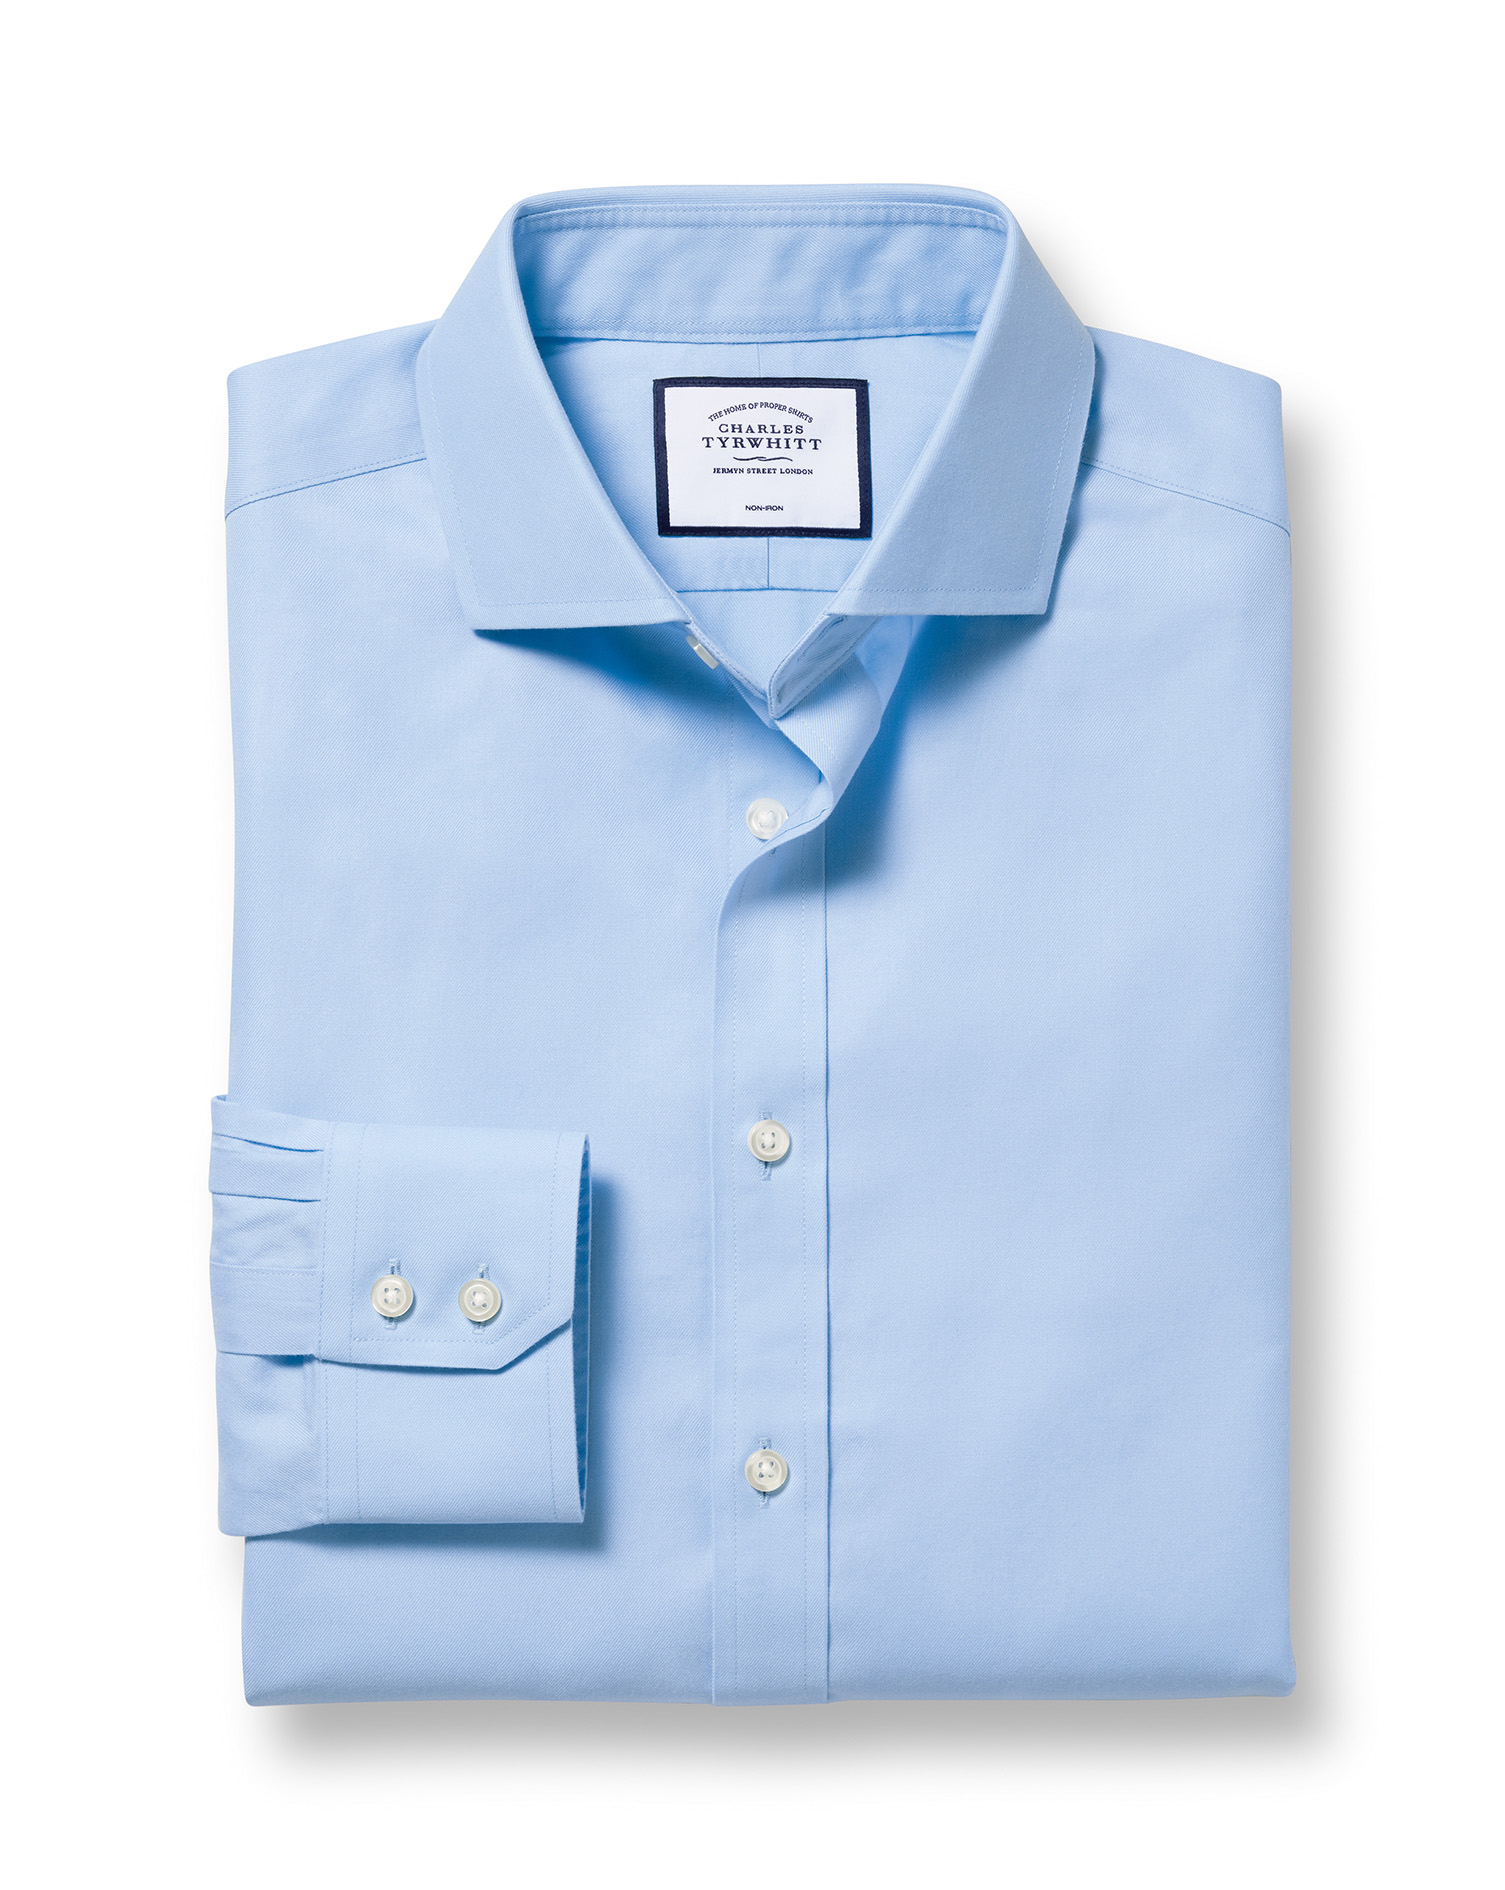 Extra Slim Fit Cutaway Non-Iron Twill Sky Blue Cotton Formal Shirt Double Cuff Size 16/36 by Charles